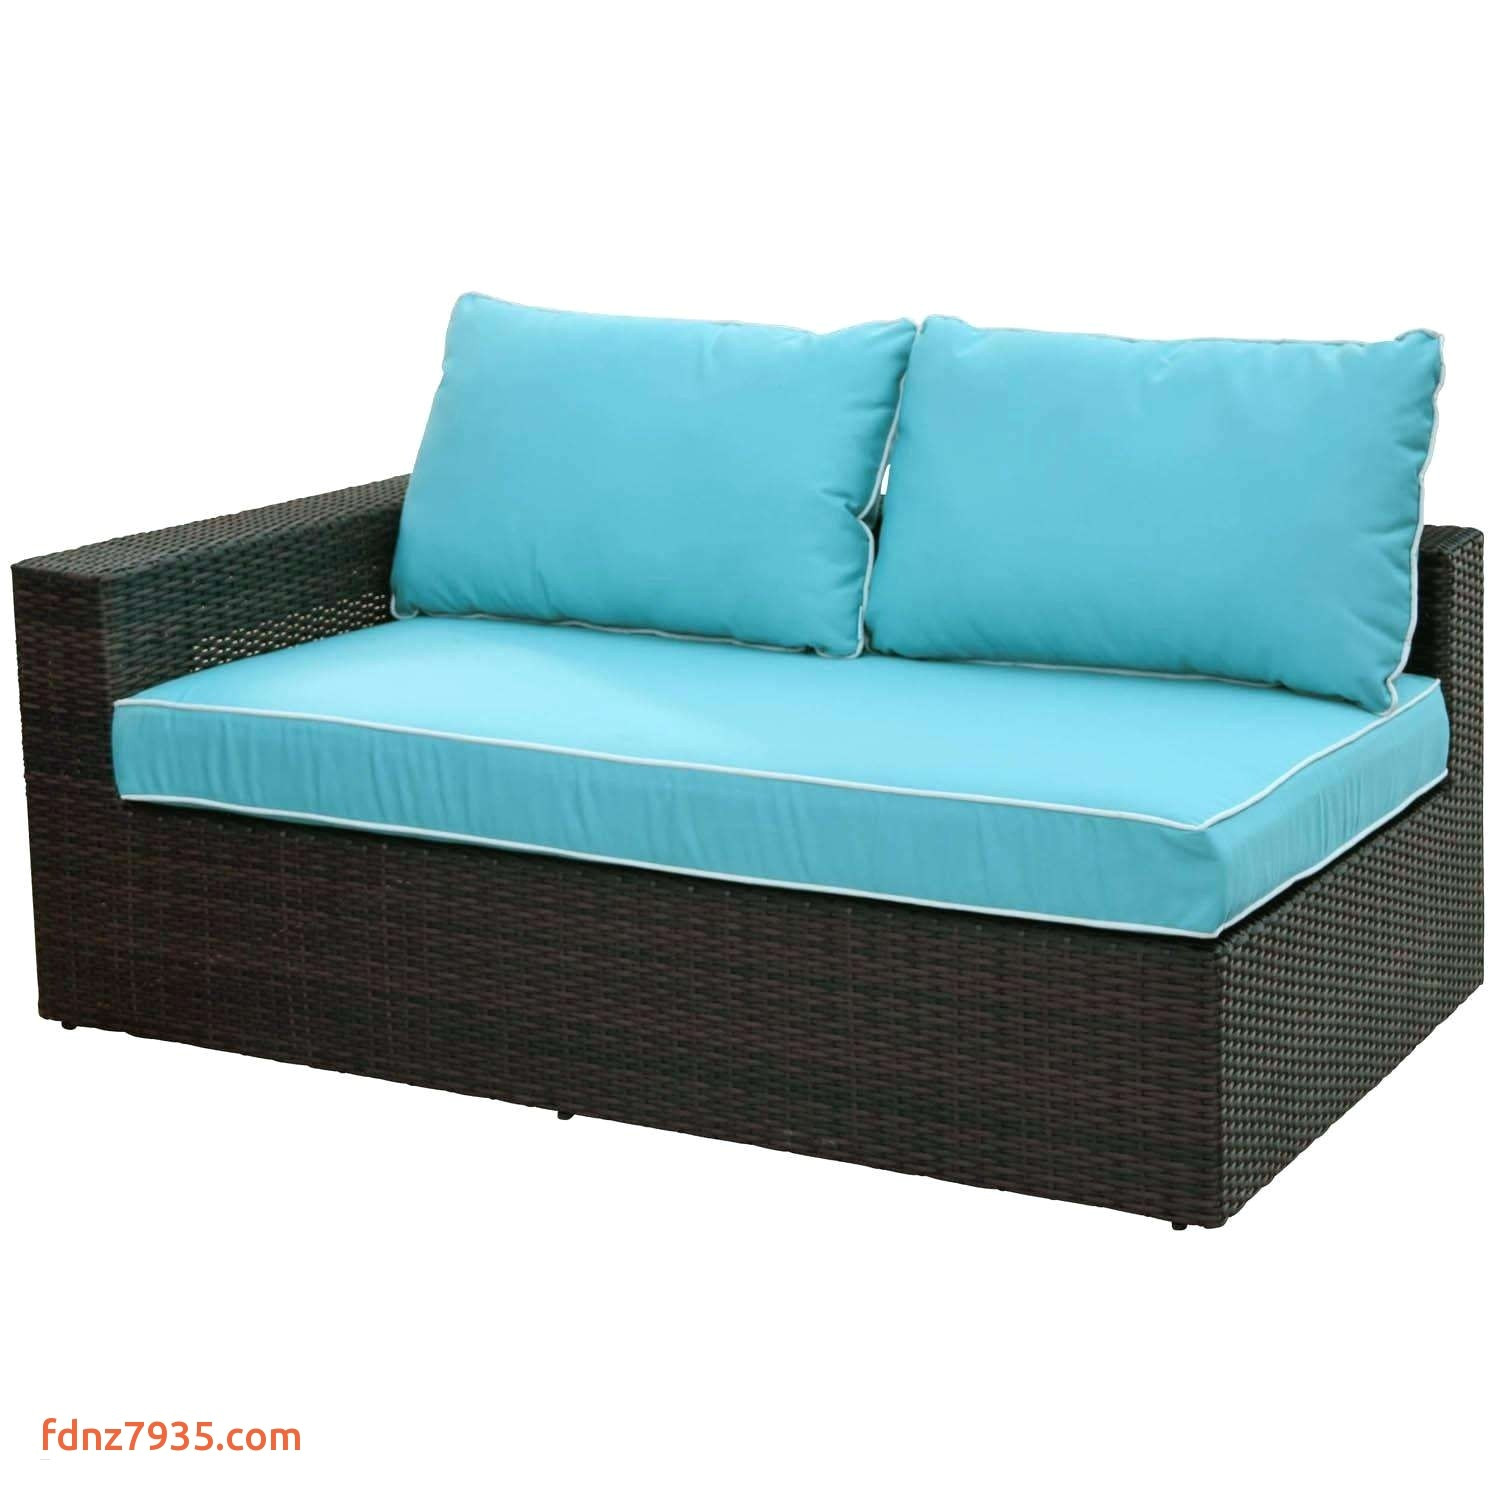 outdoor dining set fresh wicker outdoor sofa 0d patio chairs sale replacement cushions scheme